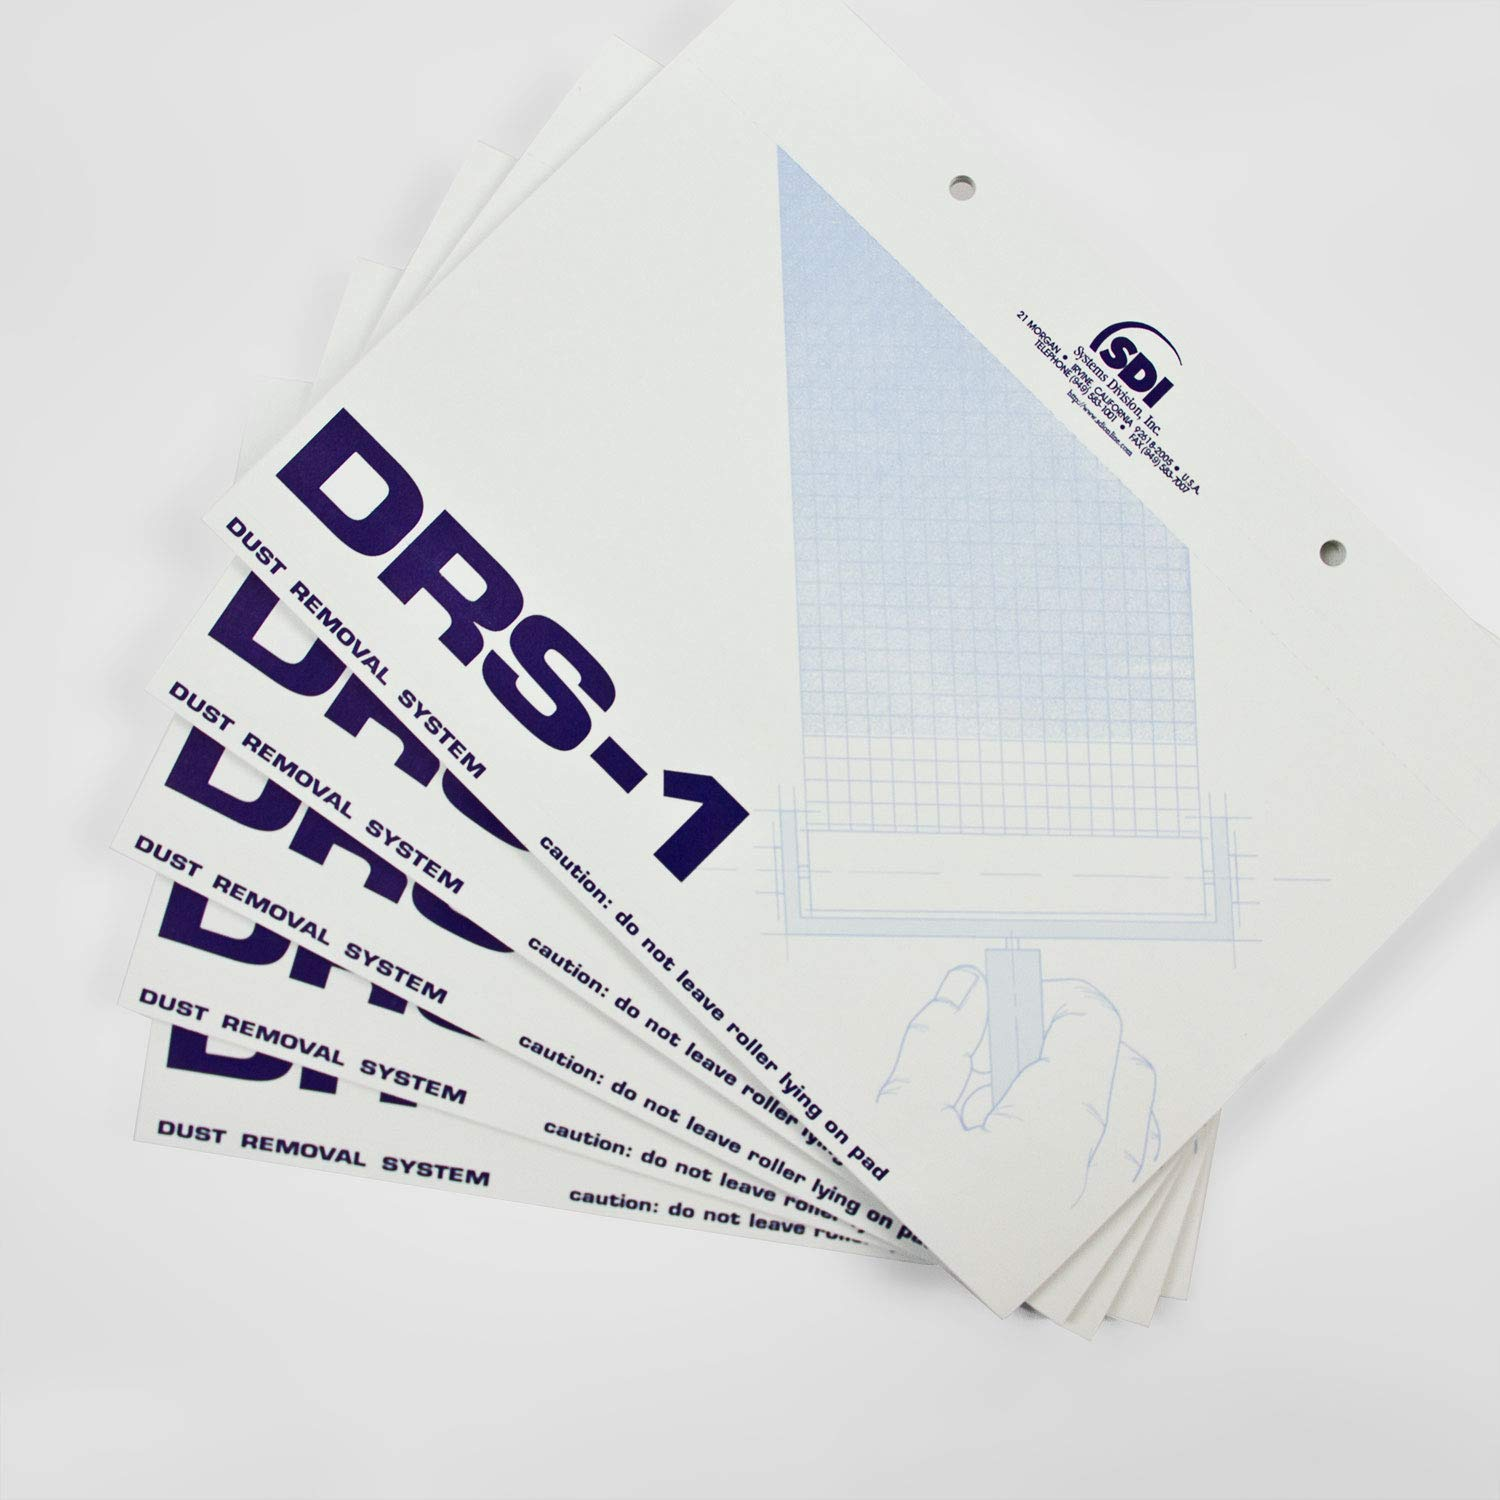 DRS Replacement Cleaning Pads - 5 Pads, 50 sh per pad by SDI, LLC. (Image #2)